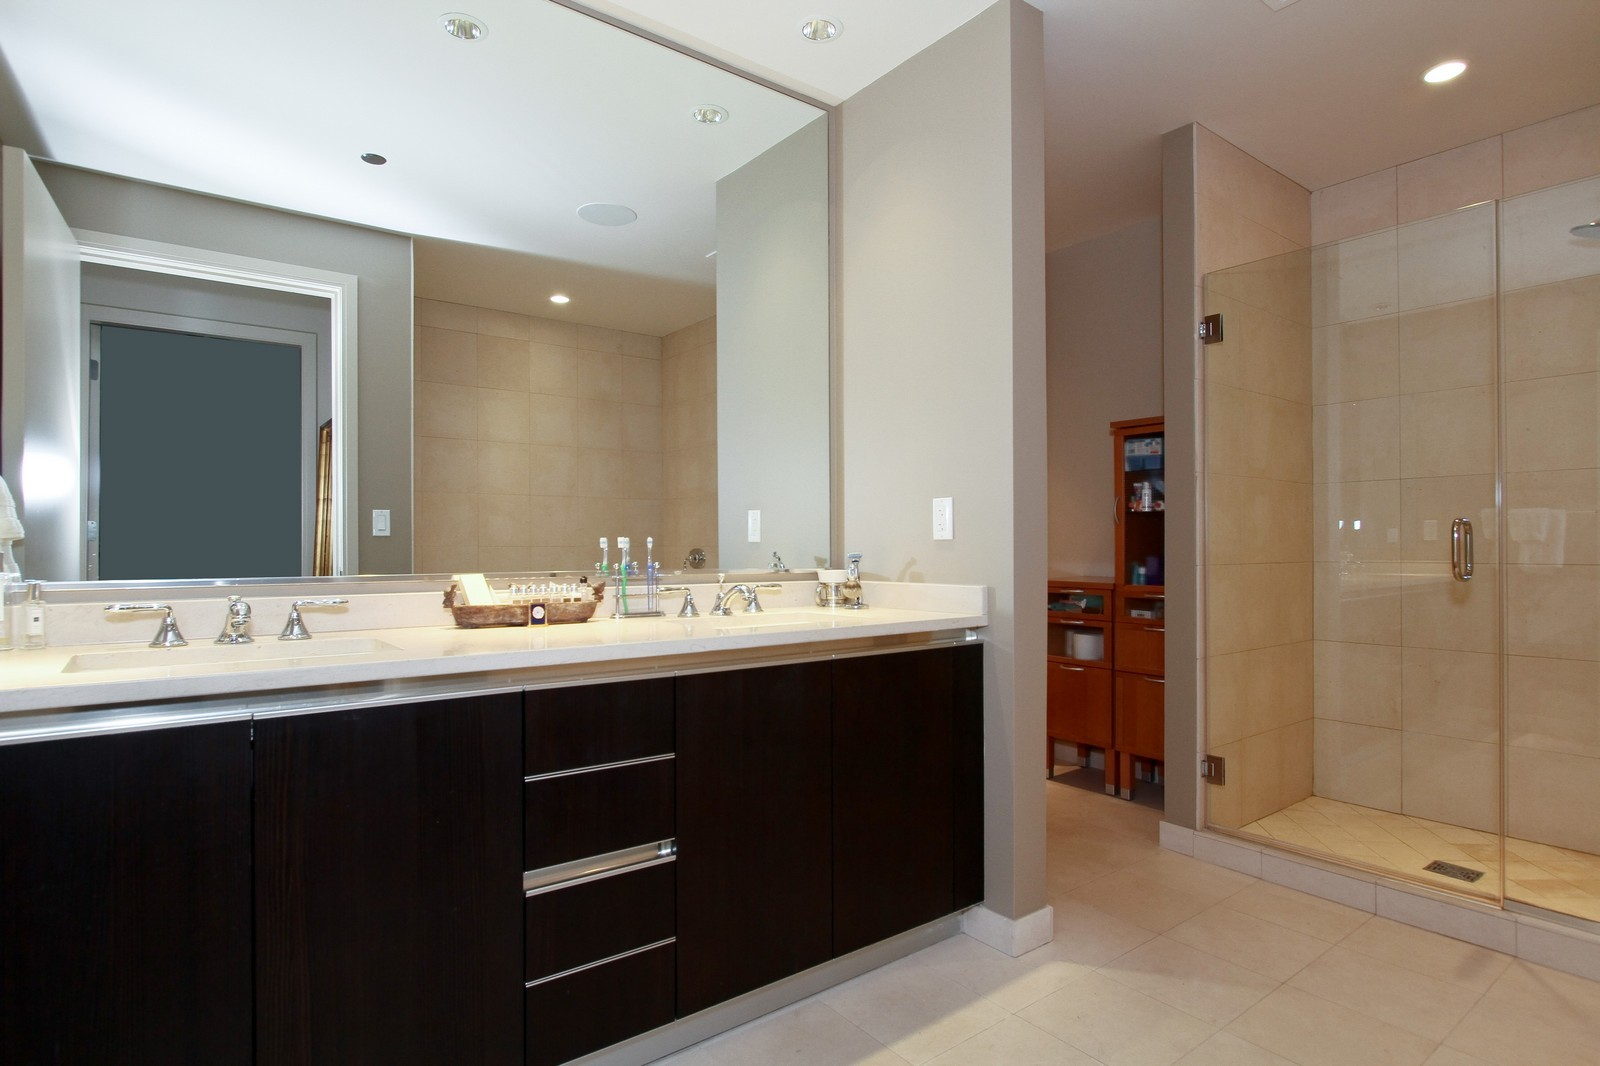 Real Estate Photography - 60 E Monroe, 6501, Chicago, IL, 60603 - Master Bathroom